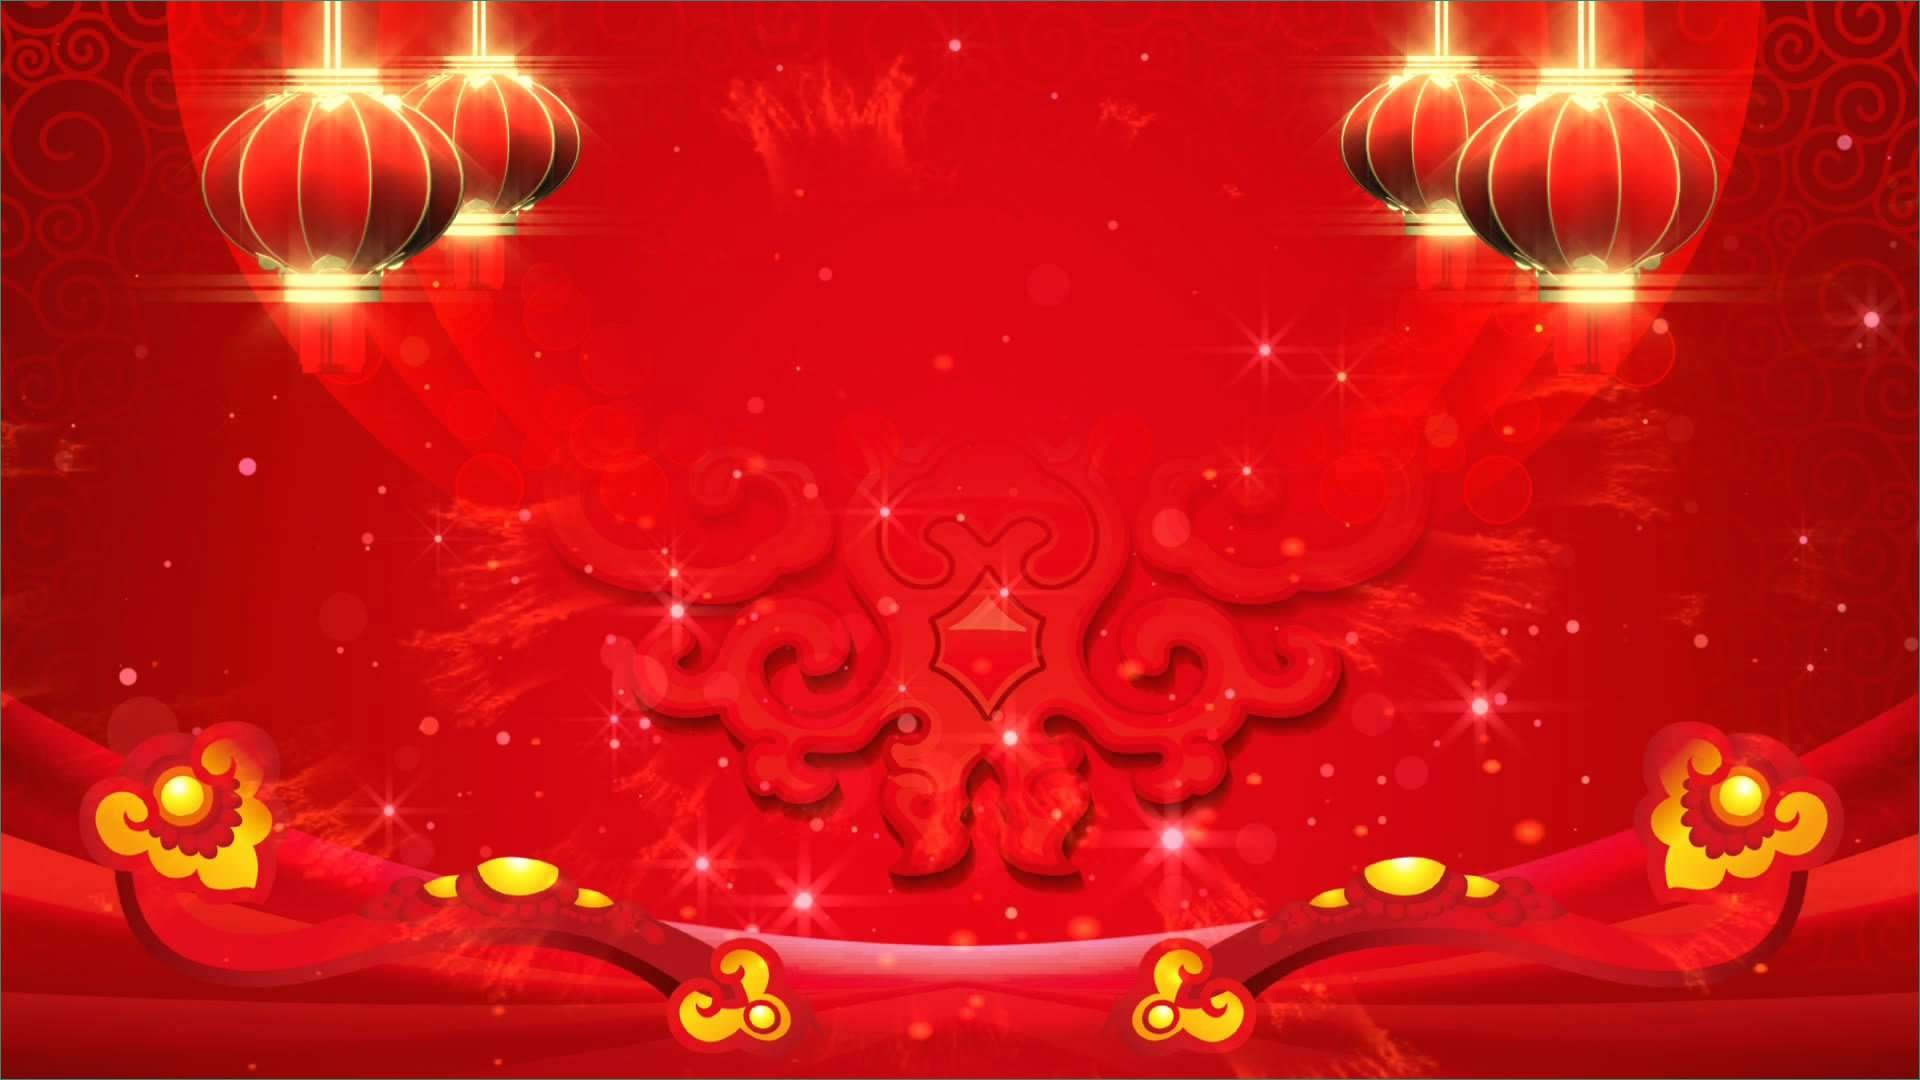 1920x1080 ... Chinese Powerpoint Background Genuine Chinese Background For Powerpoint  ...